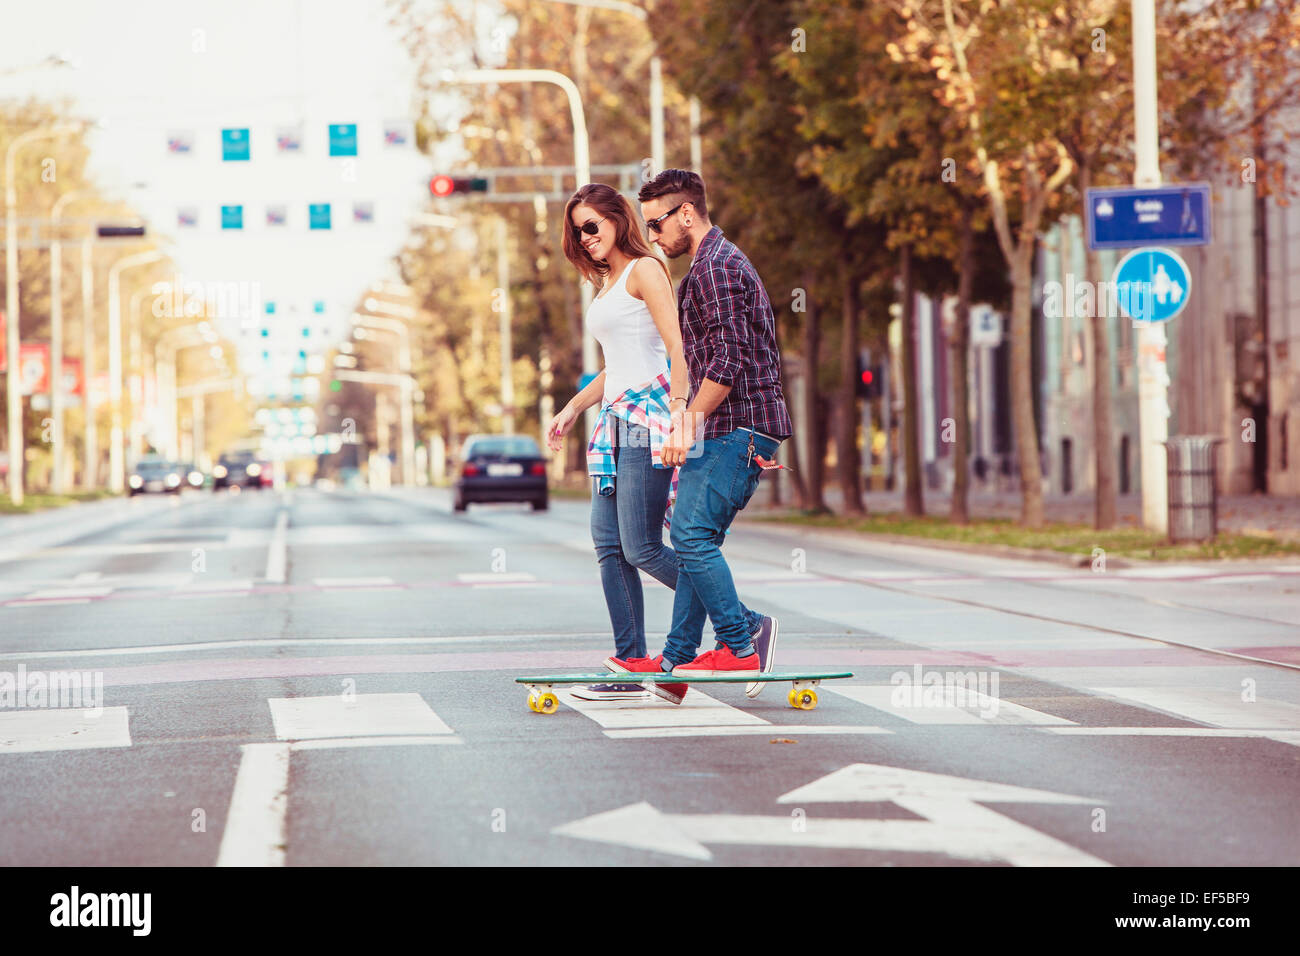 Young couple skateboarding over zebra crossing - Stock Image